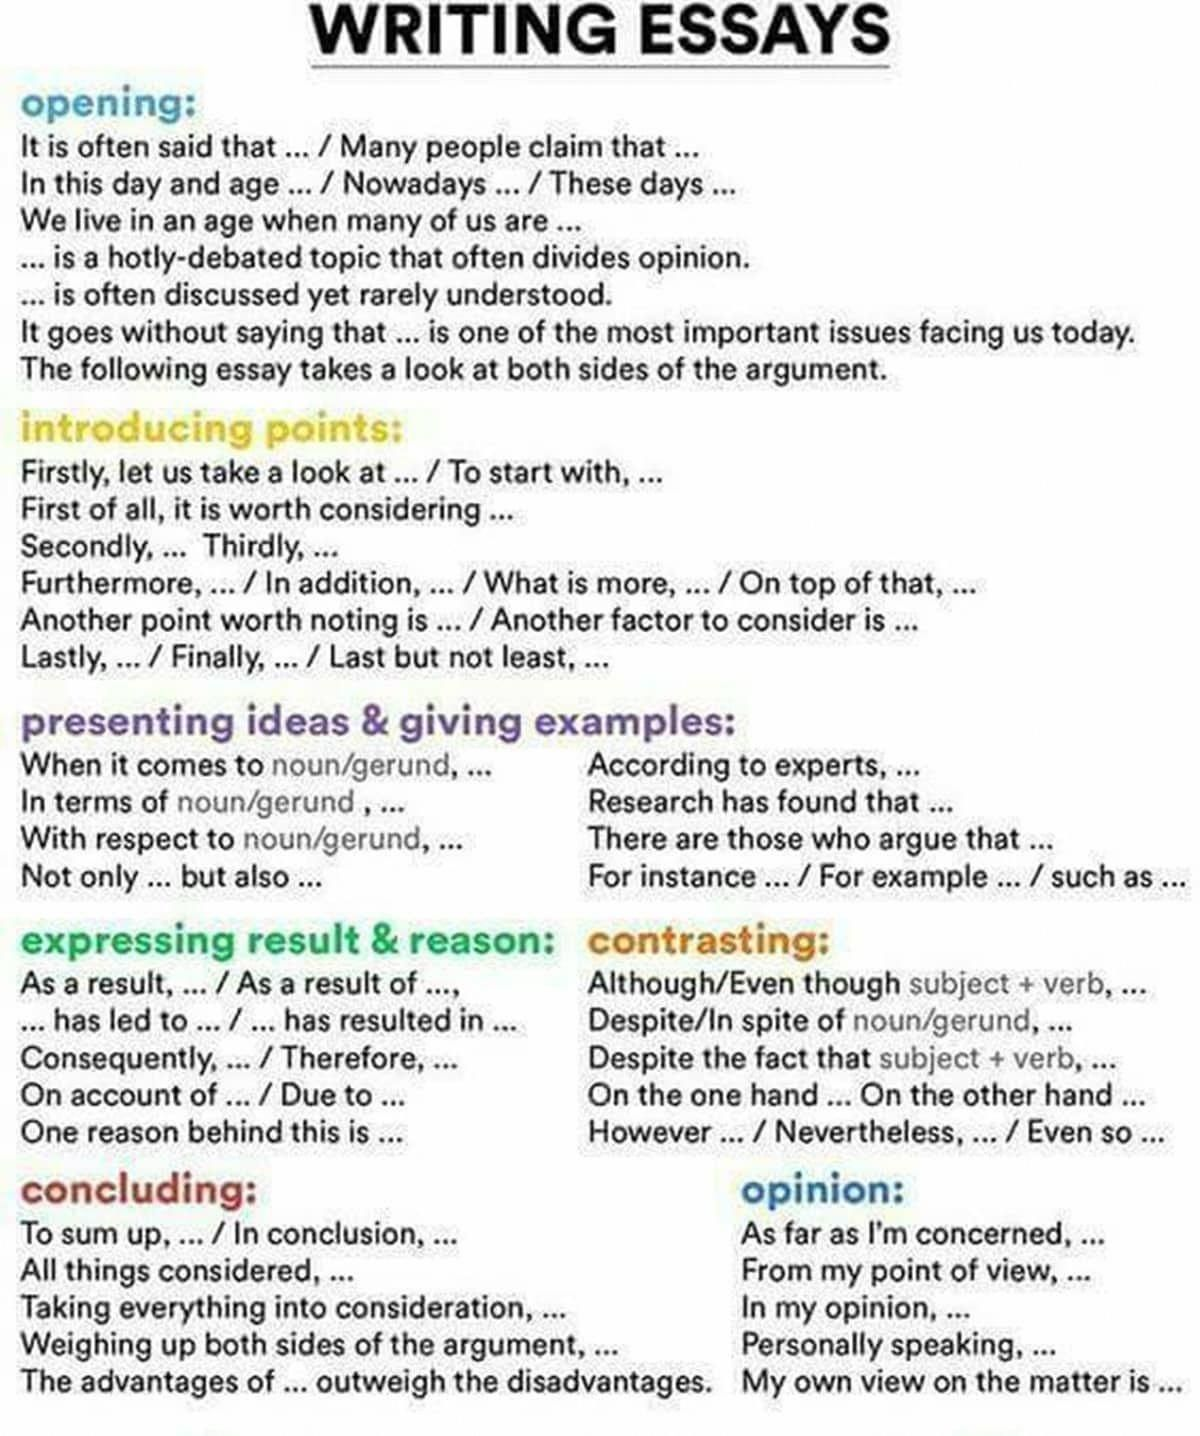 Pin For Later Write My Essay Free Pay Someone To Writing Skill Life Hack School Tips